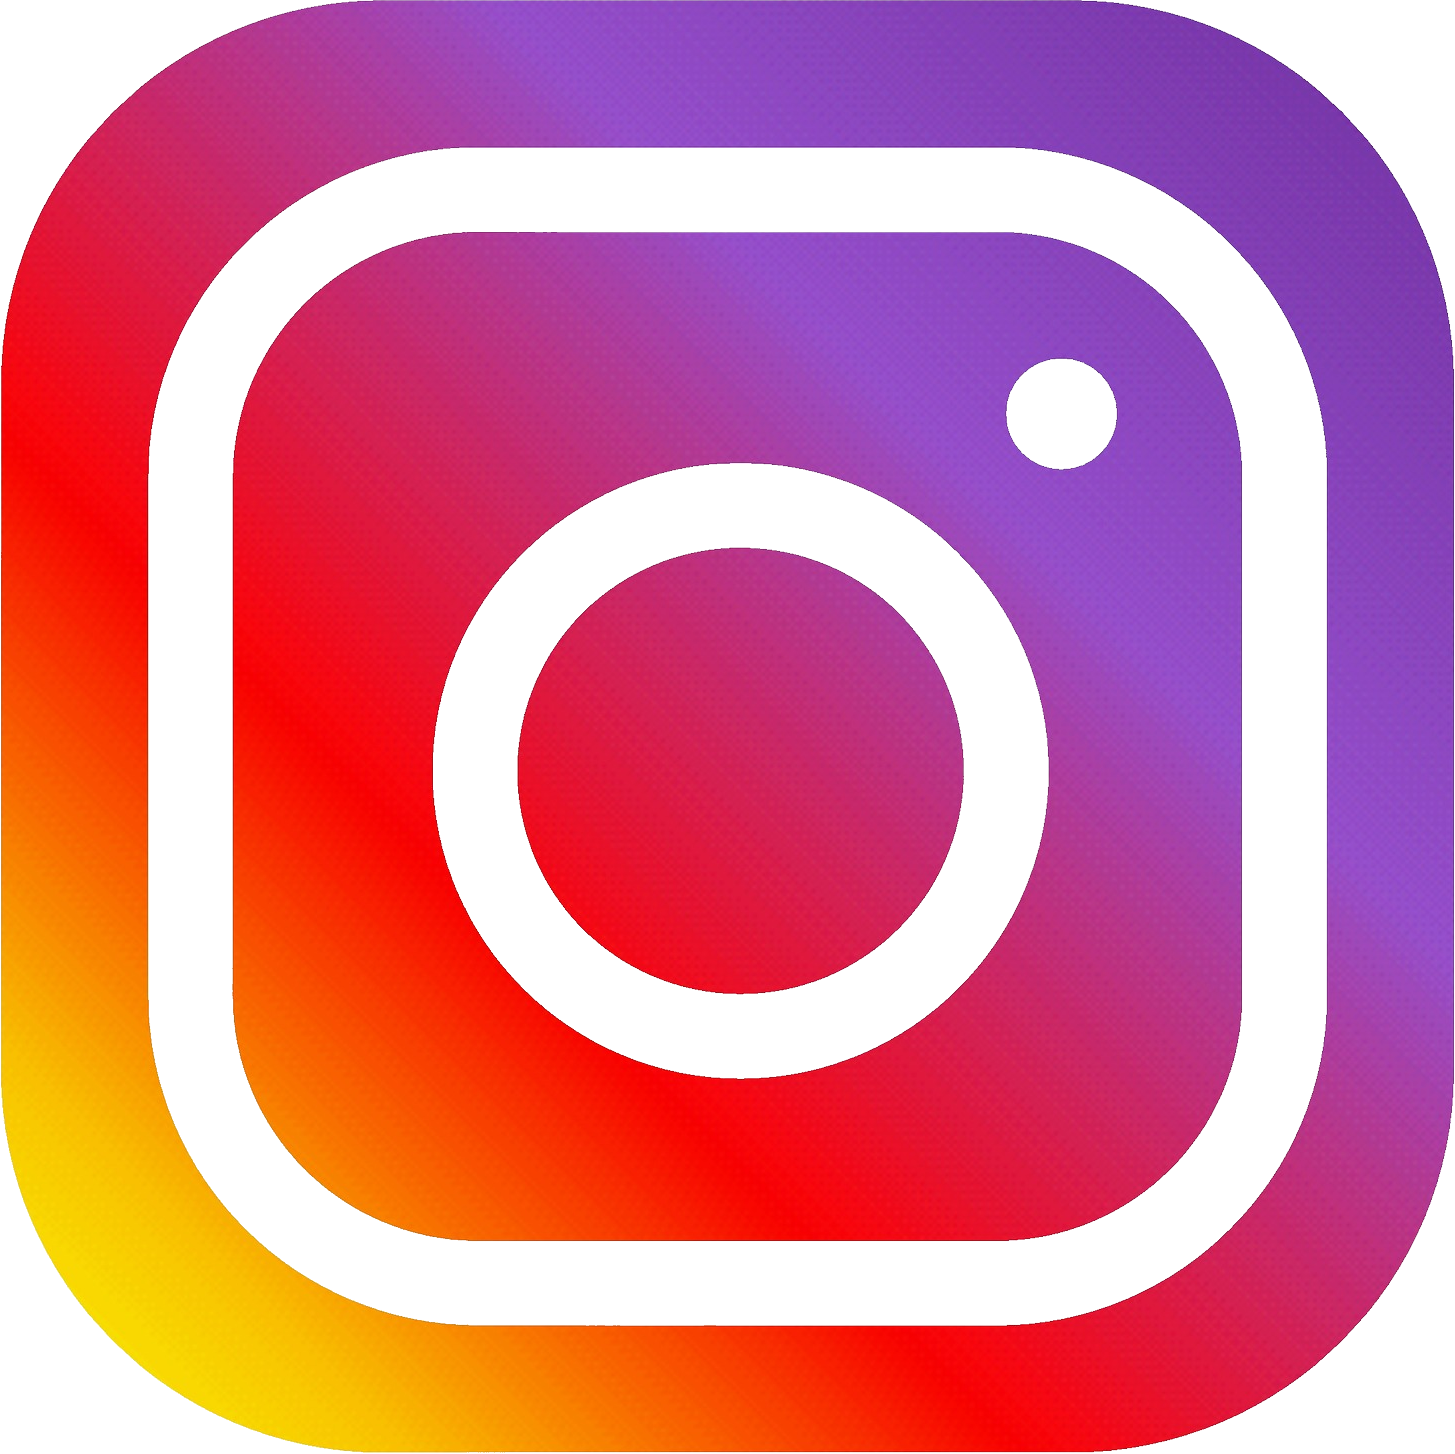 Image result for logo instagram png